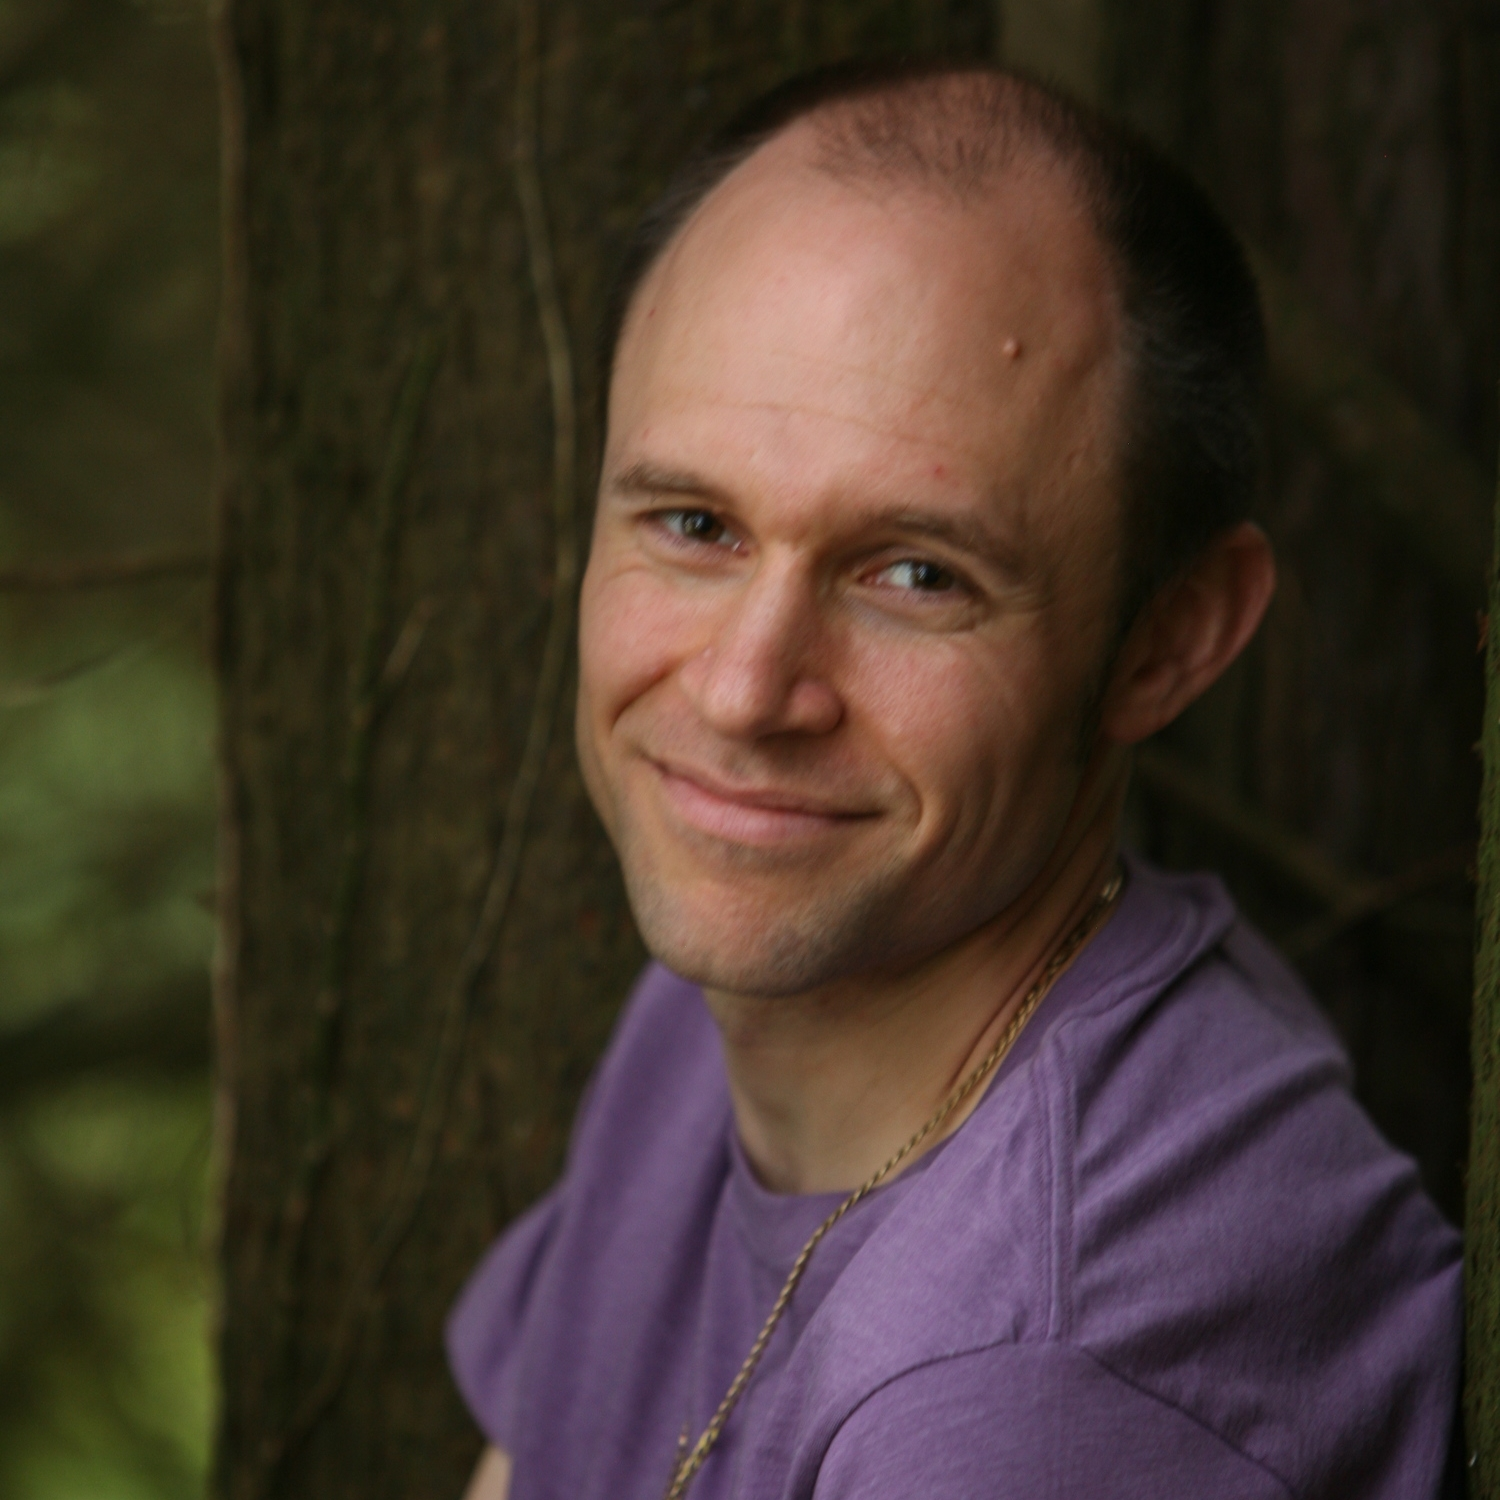 Nicholas West   I am facilitating astrology sessions (a new system of astrology that helps us on our path of spiritual evolution) as well as Rising Star energy healing. astrology  http://cosmic-quotient.commy  Profile:  http://cosmic-quotient.com/cpi-facilitators/  Rising Star Healing:  http://www.sq-wellness.com/healing-modalities/rising-star/